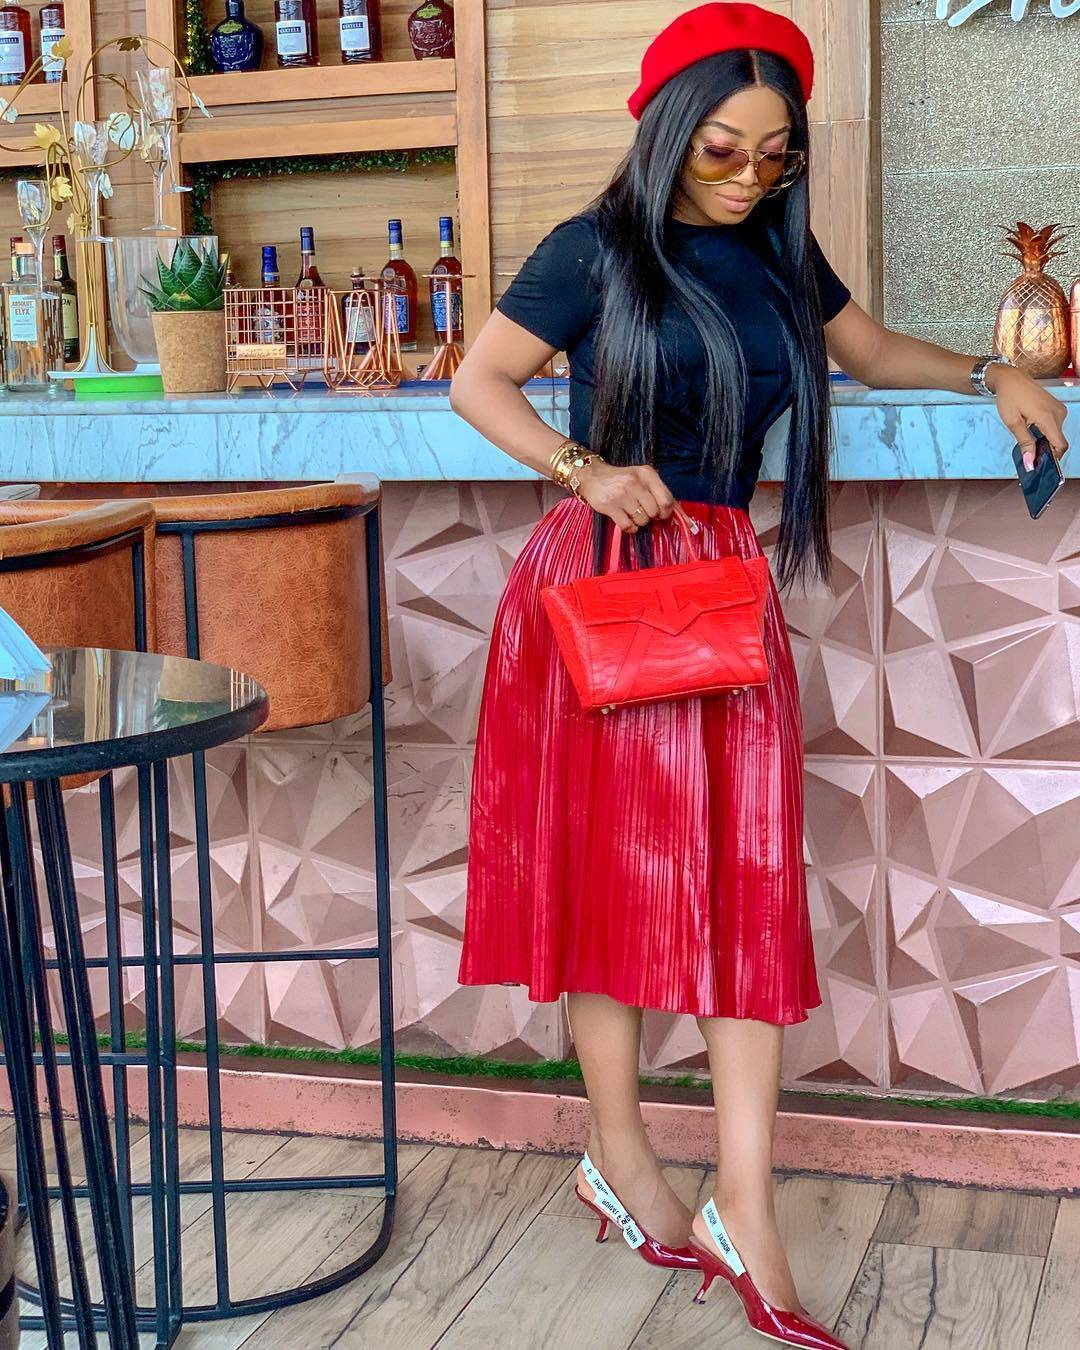 Red beret and bag